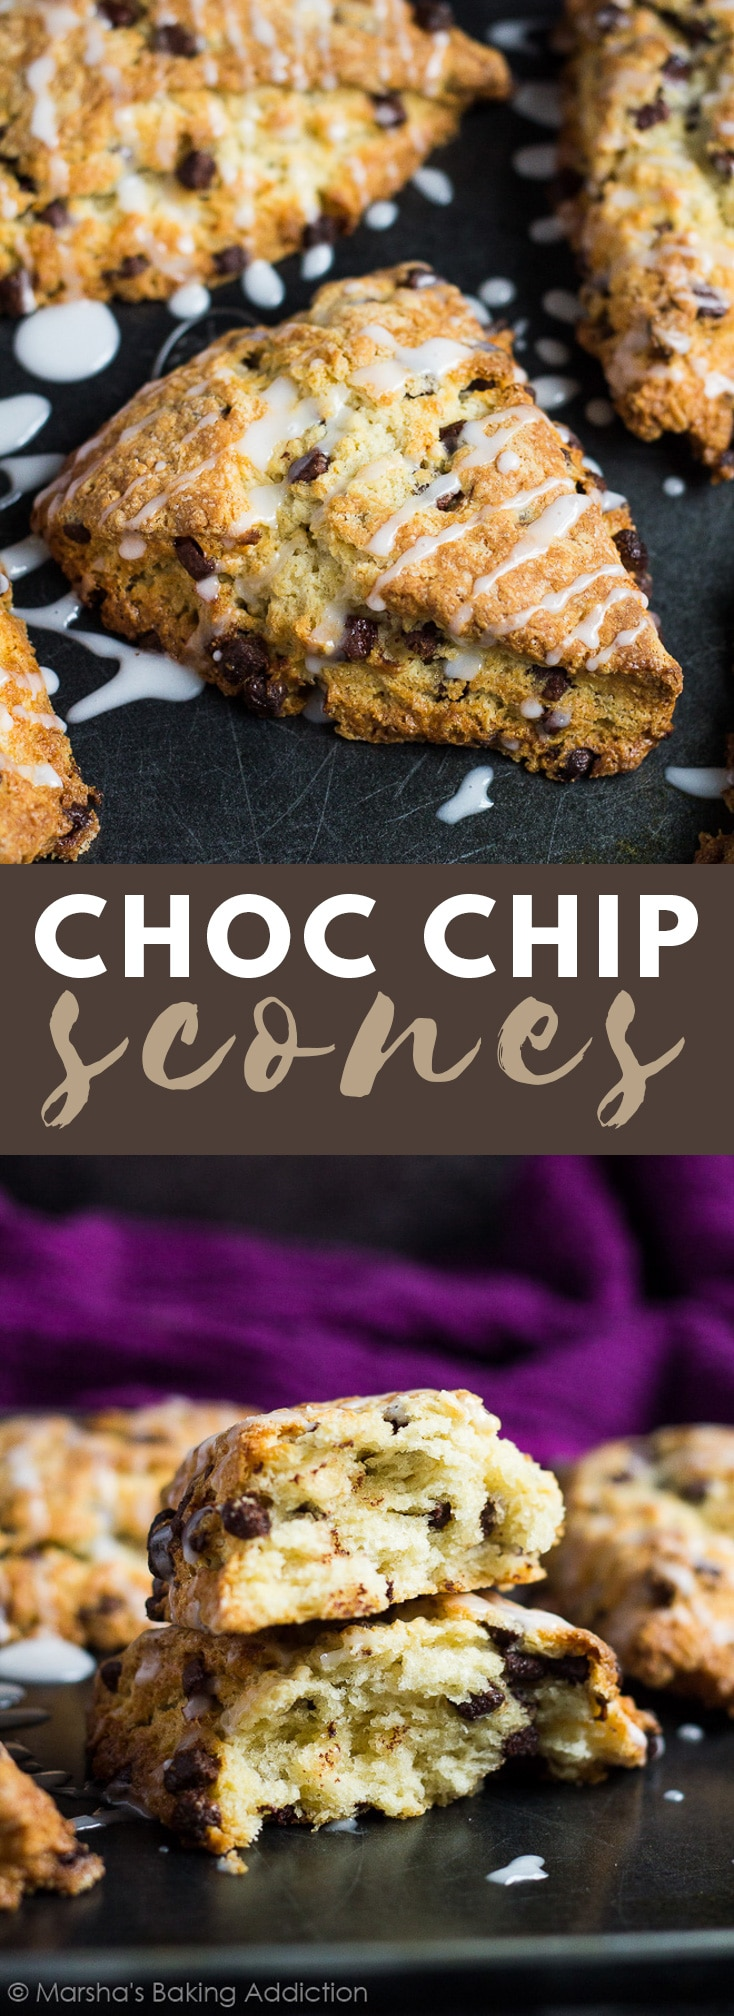 Chocolate Chip Scones- Deliciously moist, fluffy and tender vanilla scones stuffed full of chocolate chips, and drizzled with a sweet glaze! #chocolatechip #scones #breadrecipes #breakfastrecipes